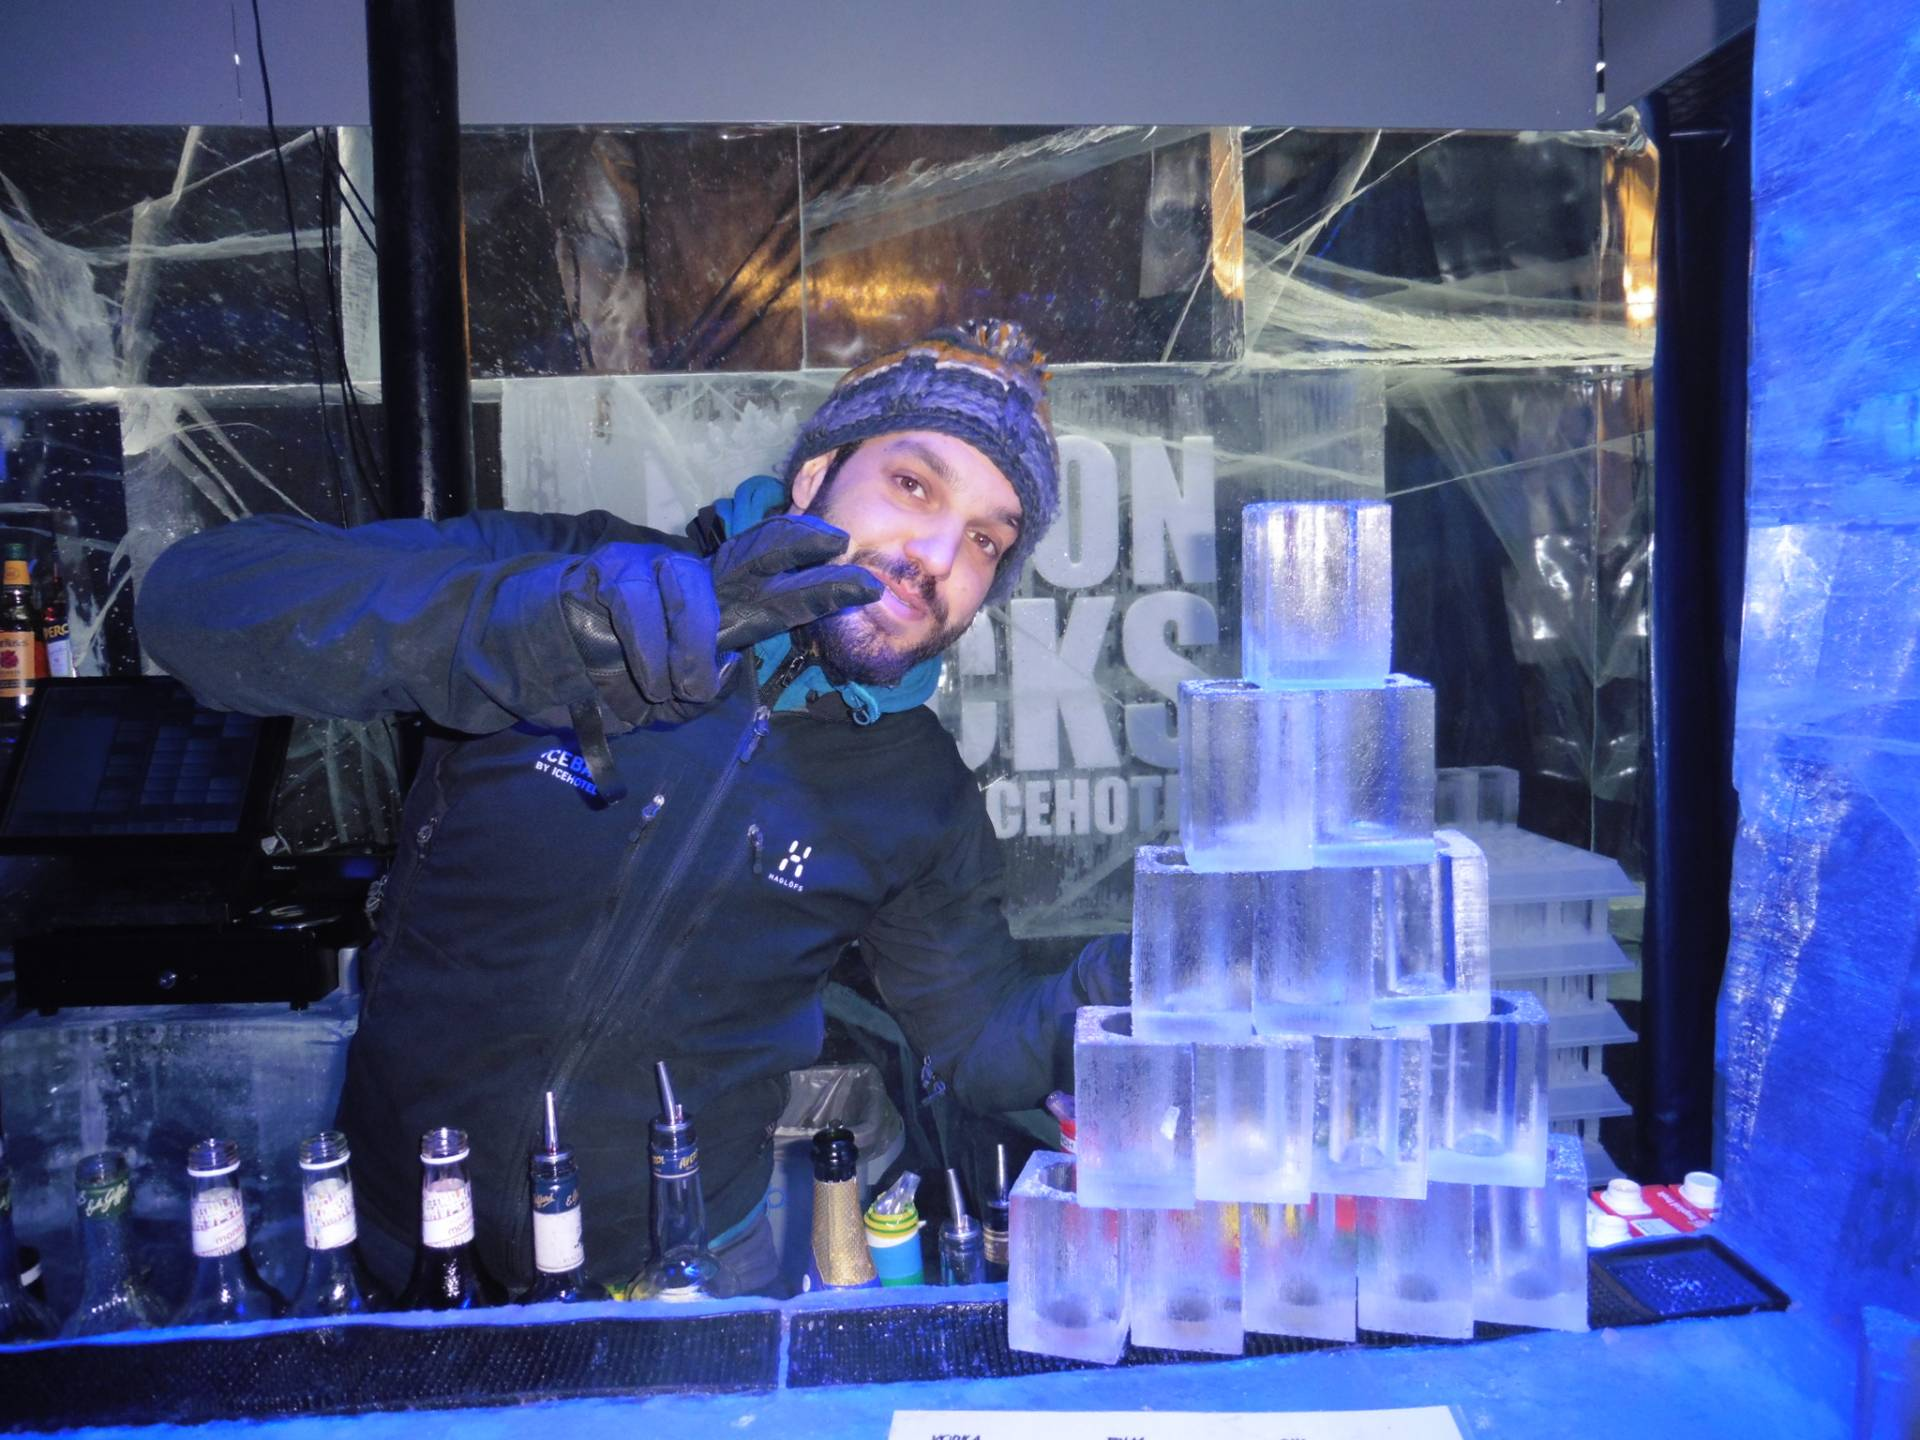 The Bar Man @ Ice Bar, London